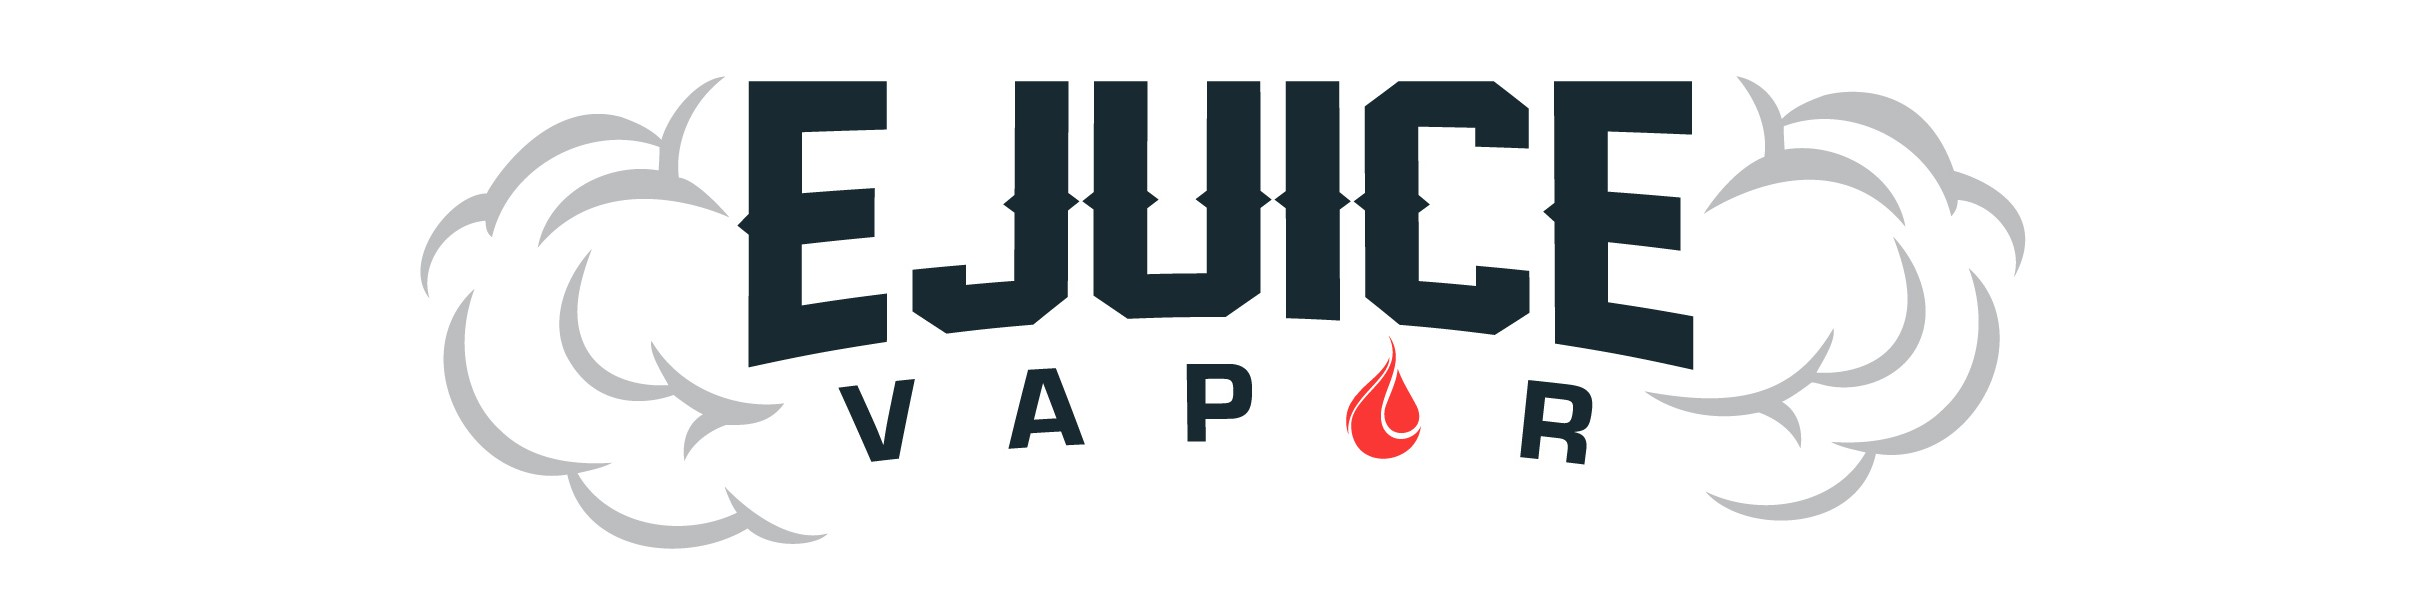 Image result for http://ejuicevapor.co.nz